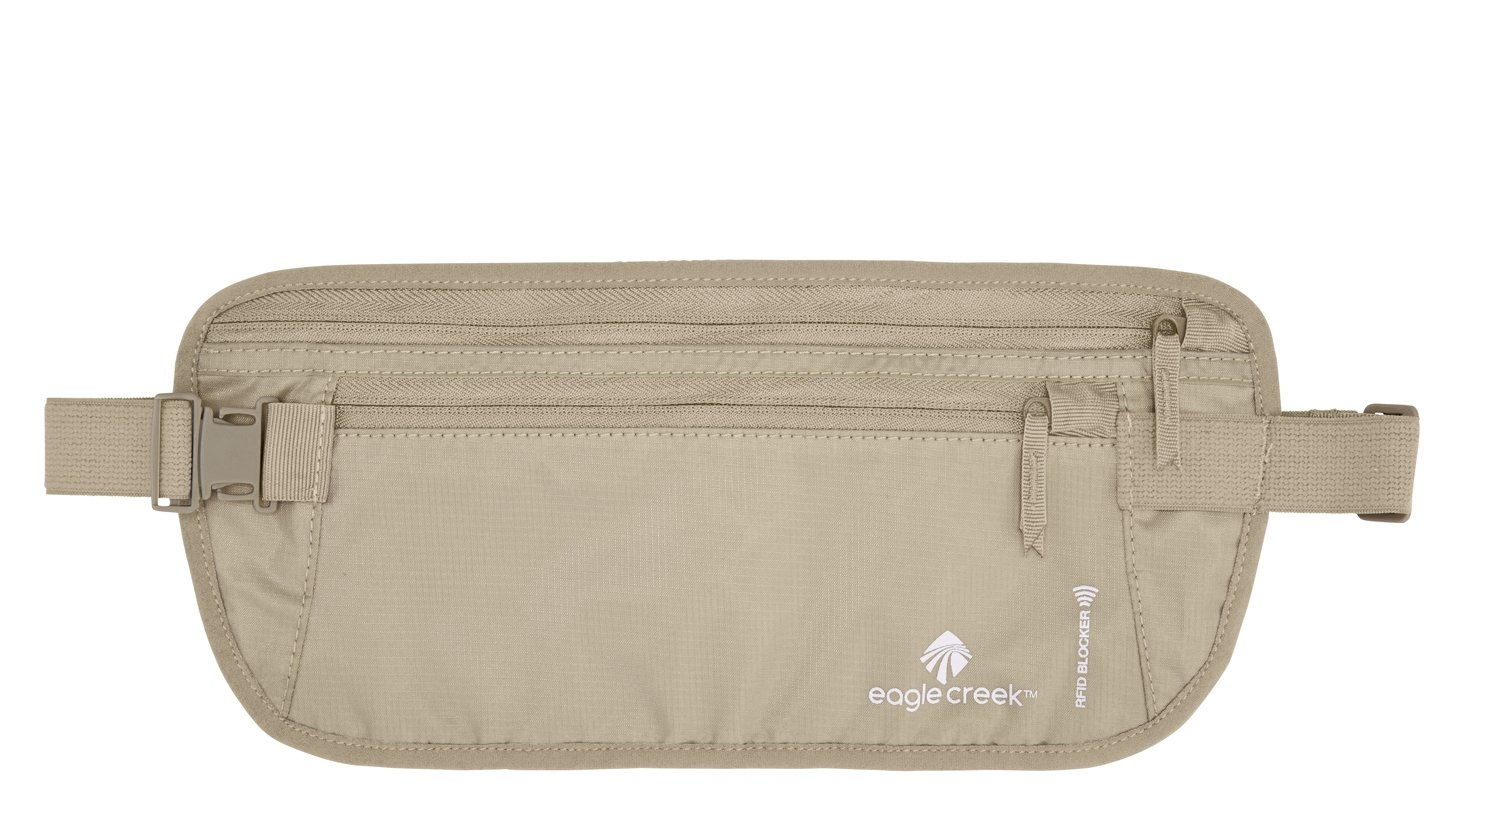 Eagle Creek RFID Blocker Money Belt, Tan, One Size EC-41176